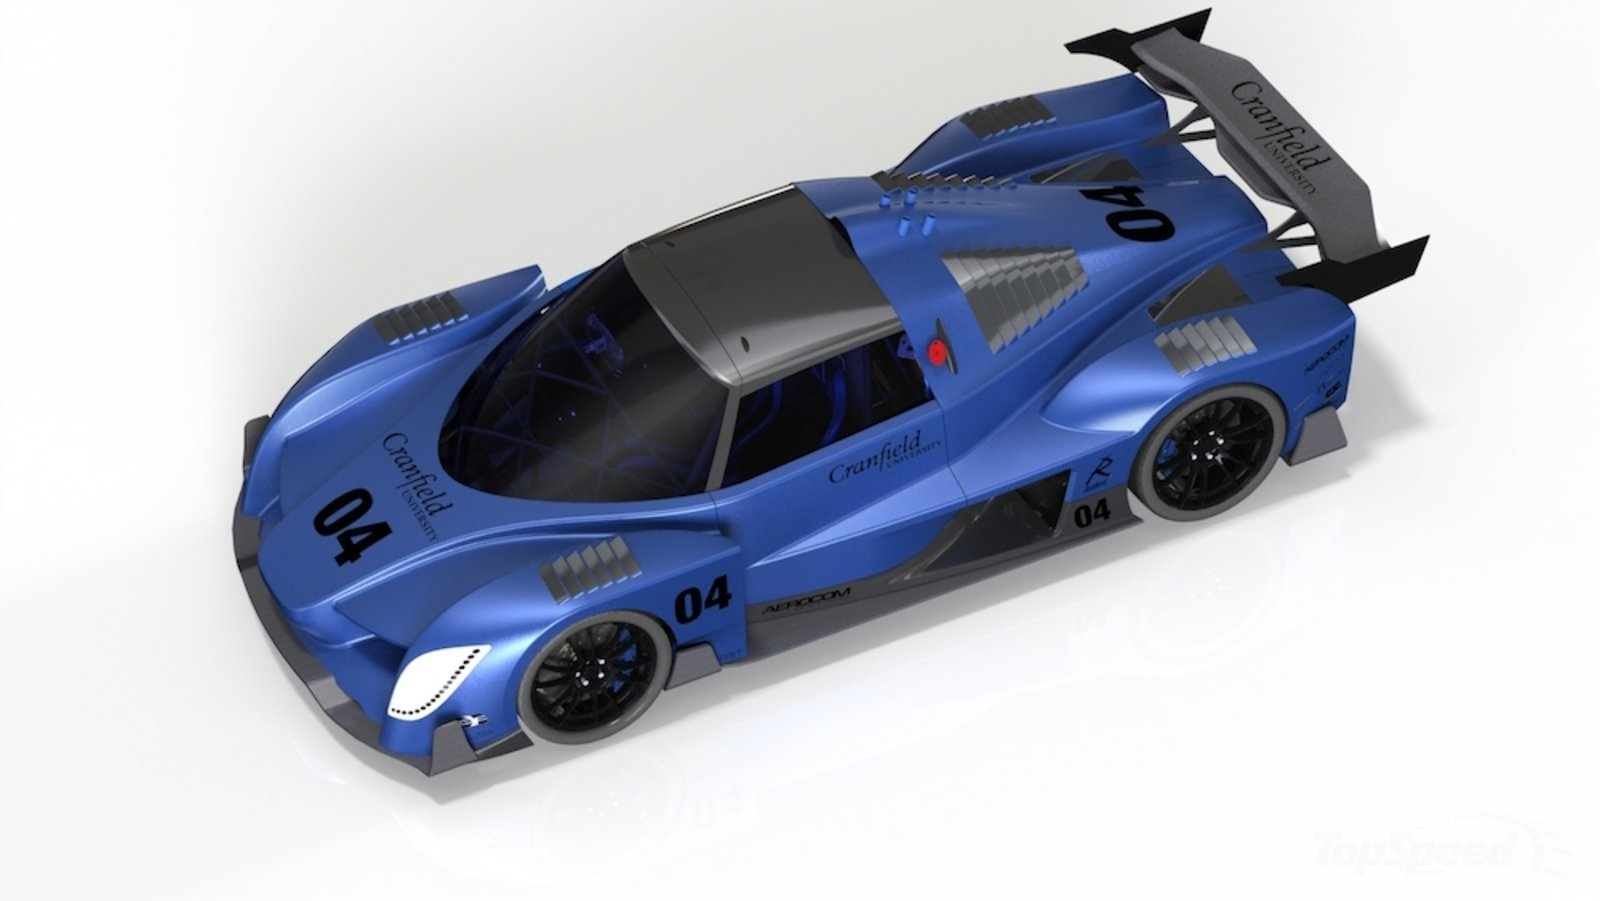 2015 Radical Rxc Hydrogen Powered Review Top Speed